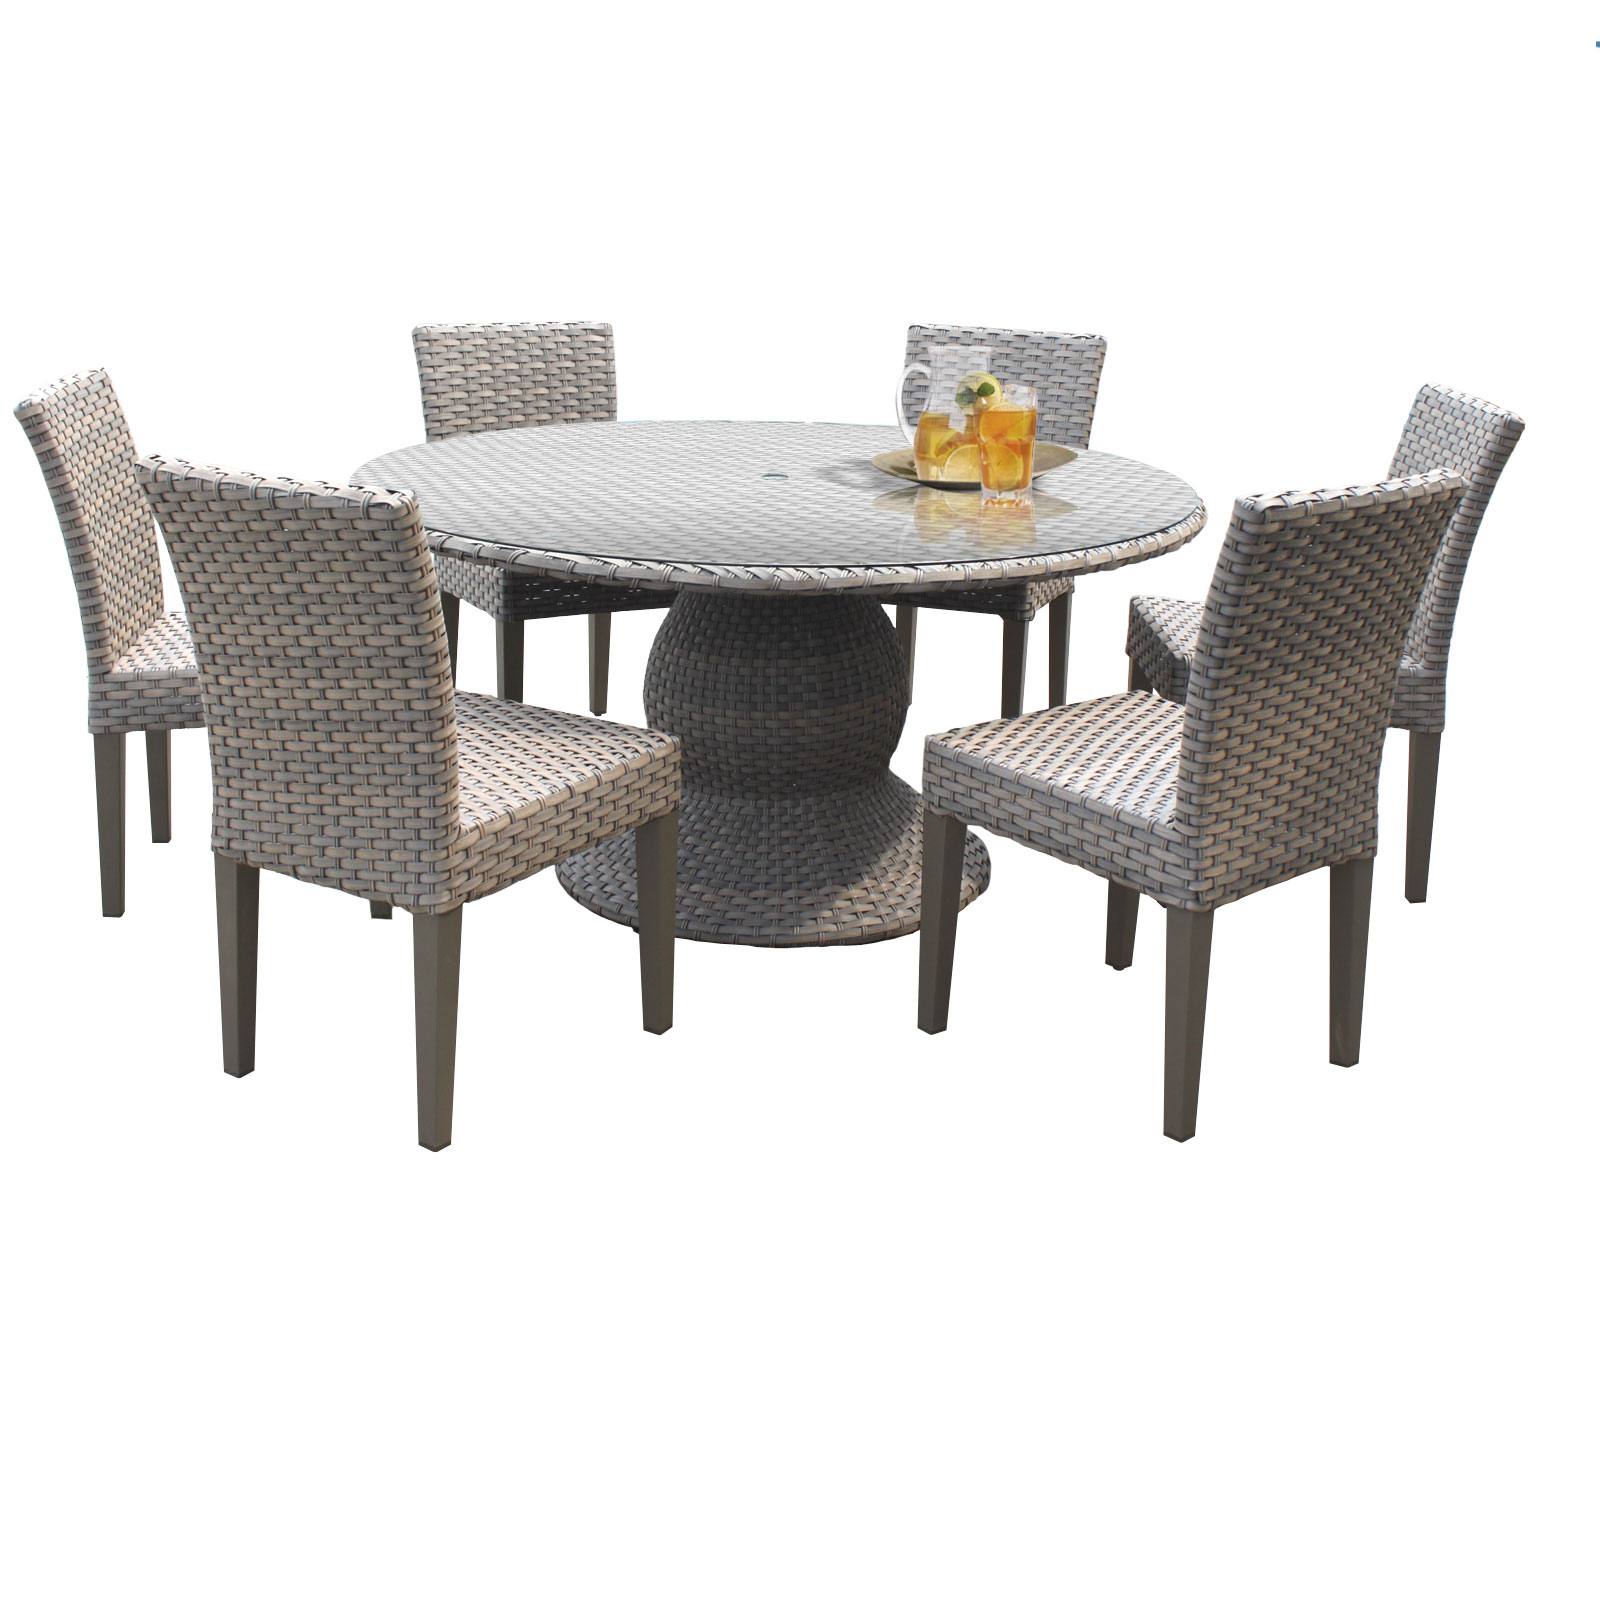 harmony 60 inch outdoor patio dining table with 6 chairs